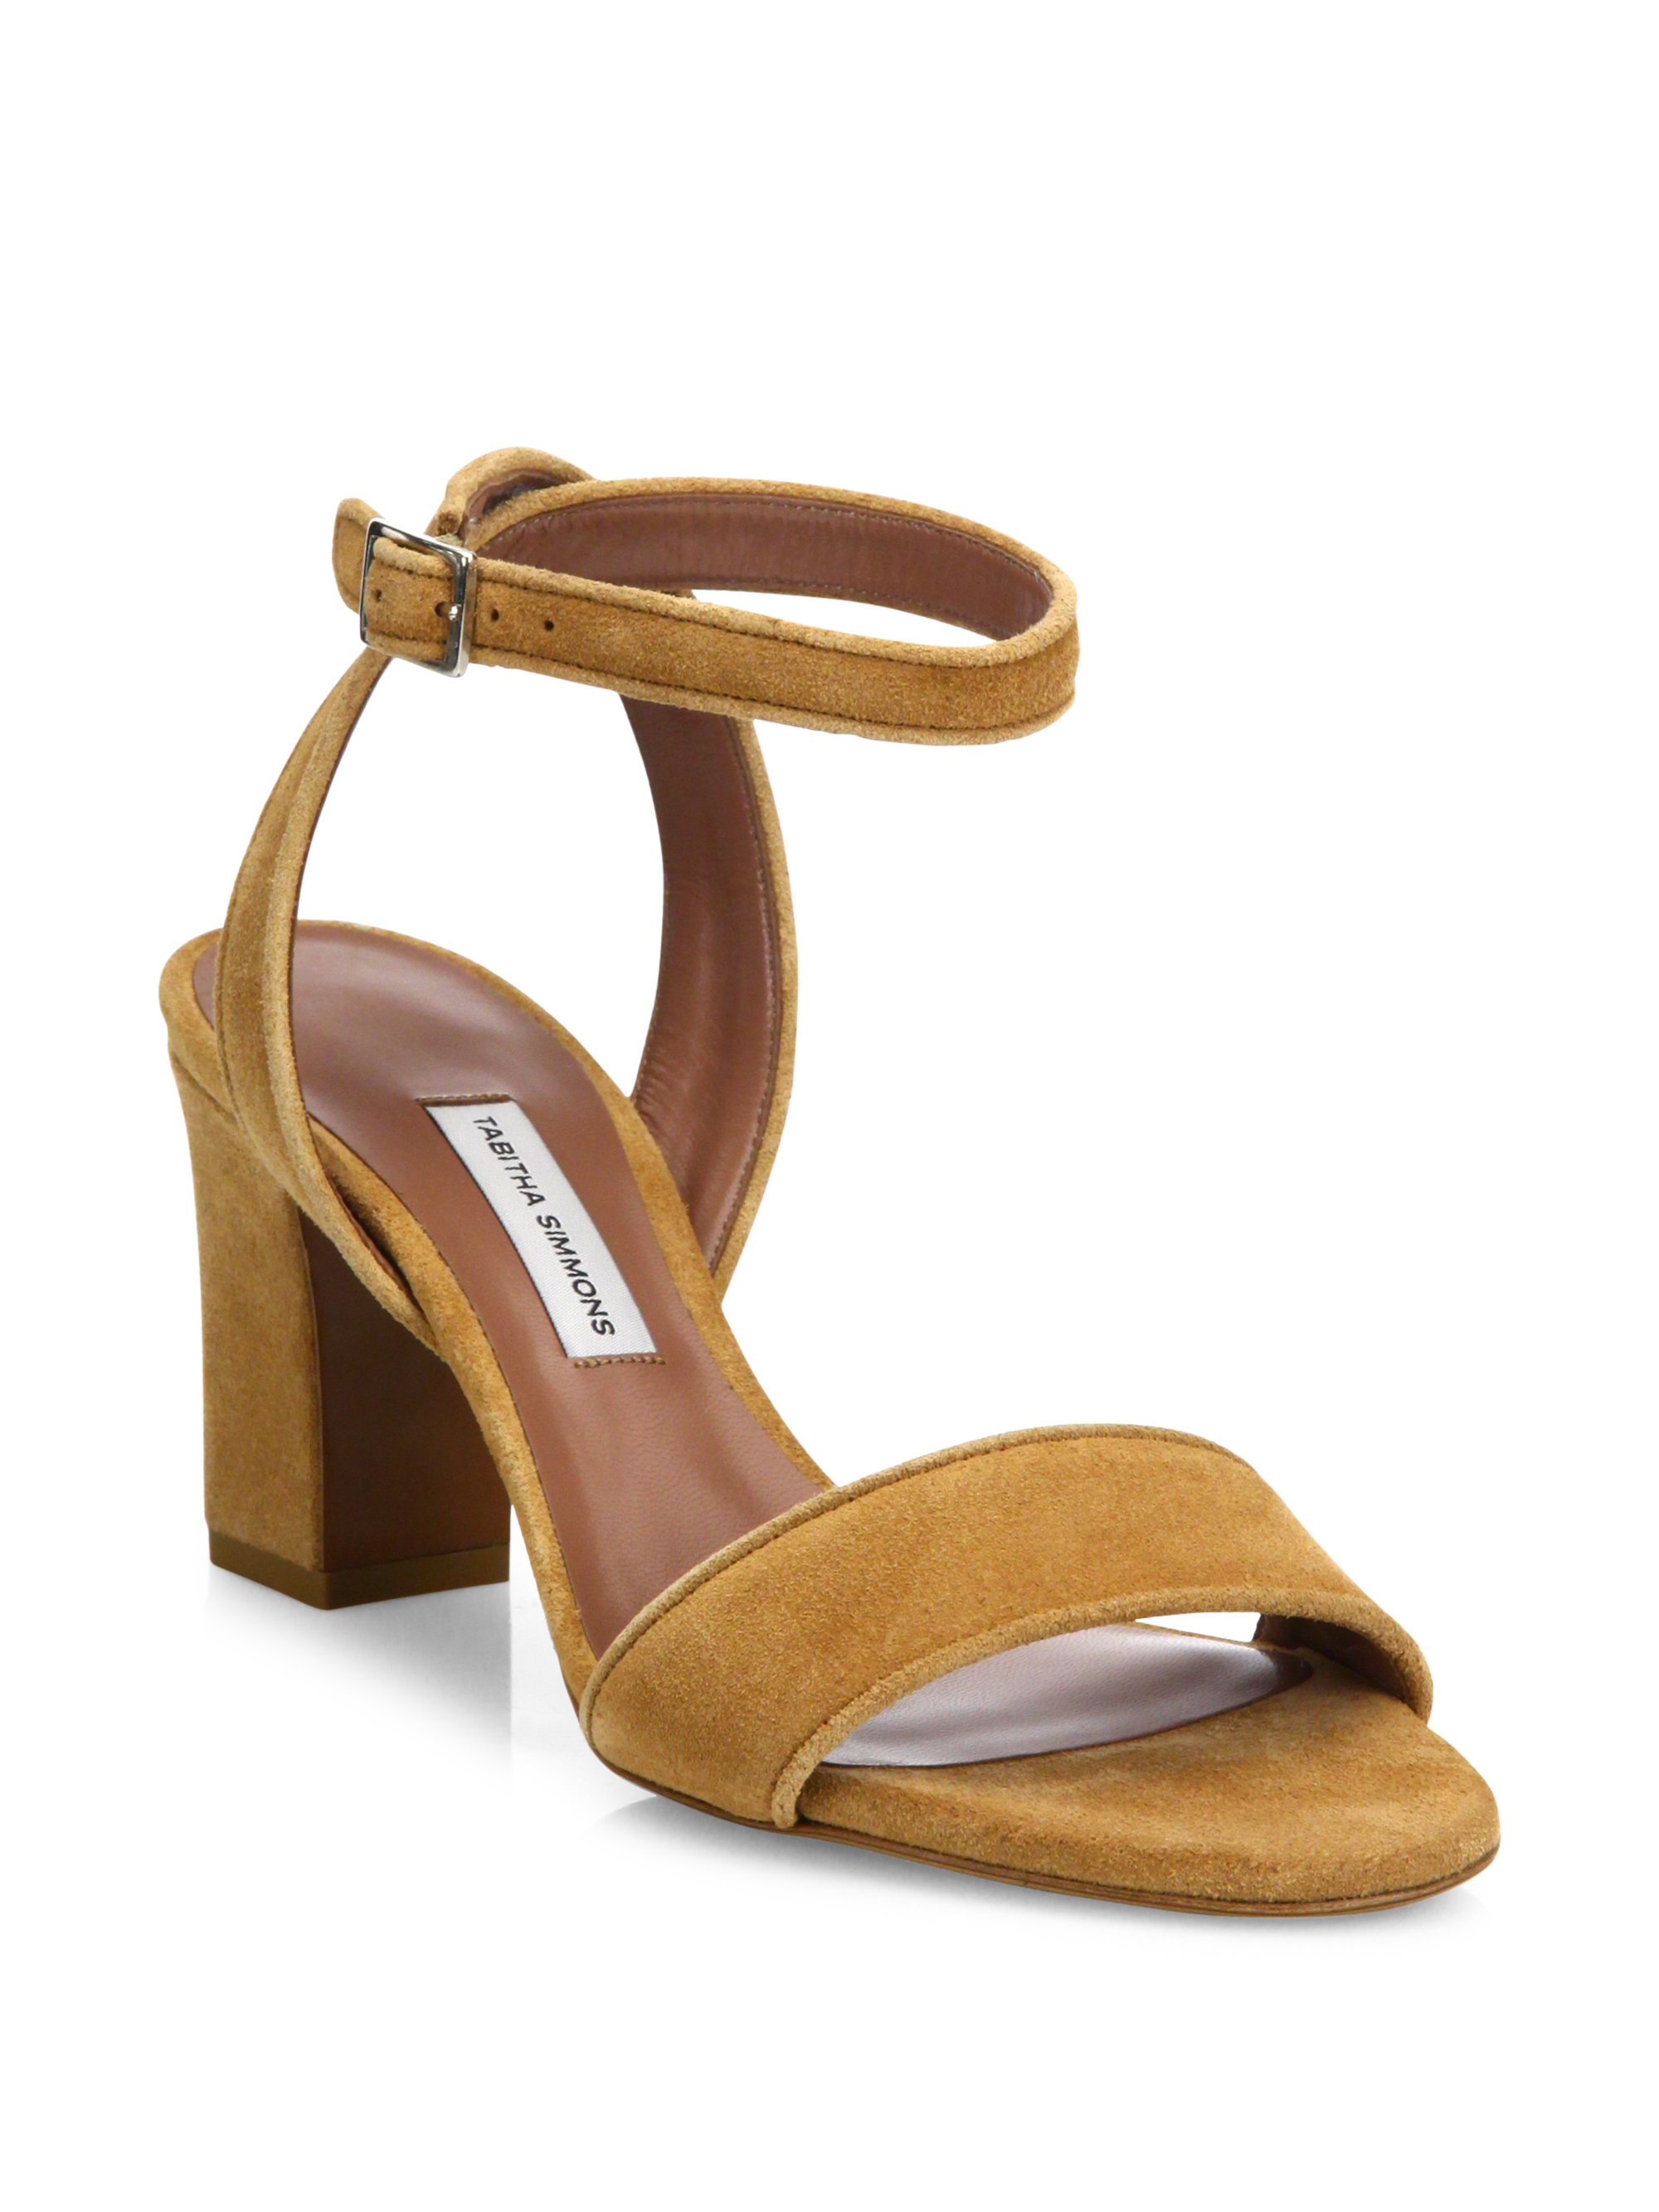 Lyst Tabitha Simmons Leticia Suede Block Heel Sandals In